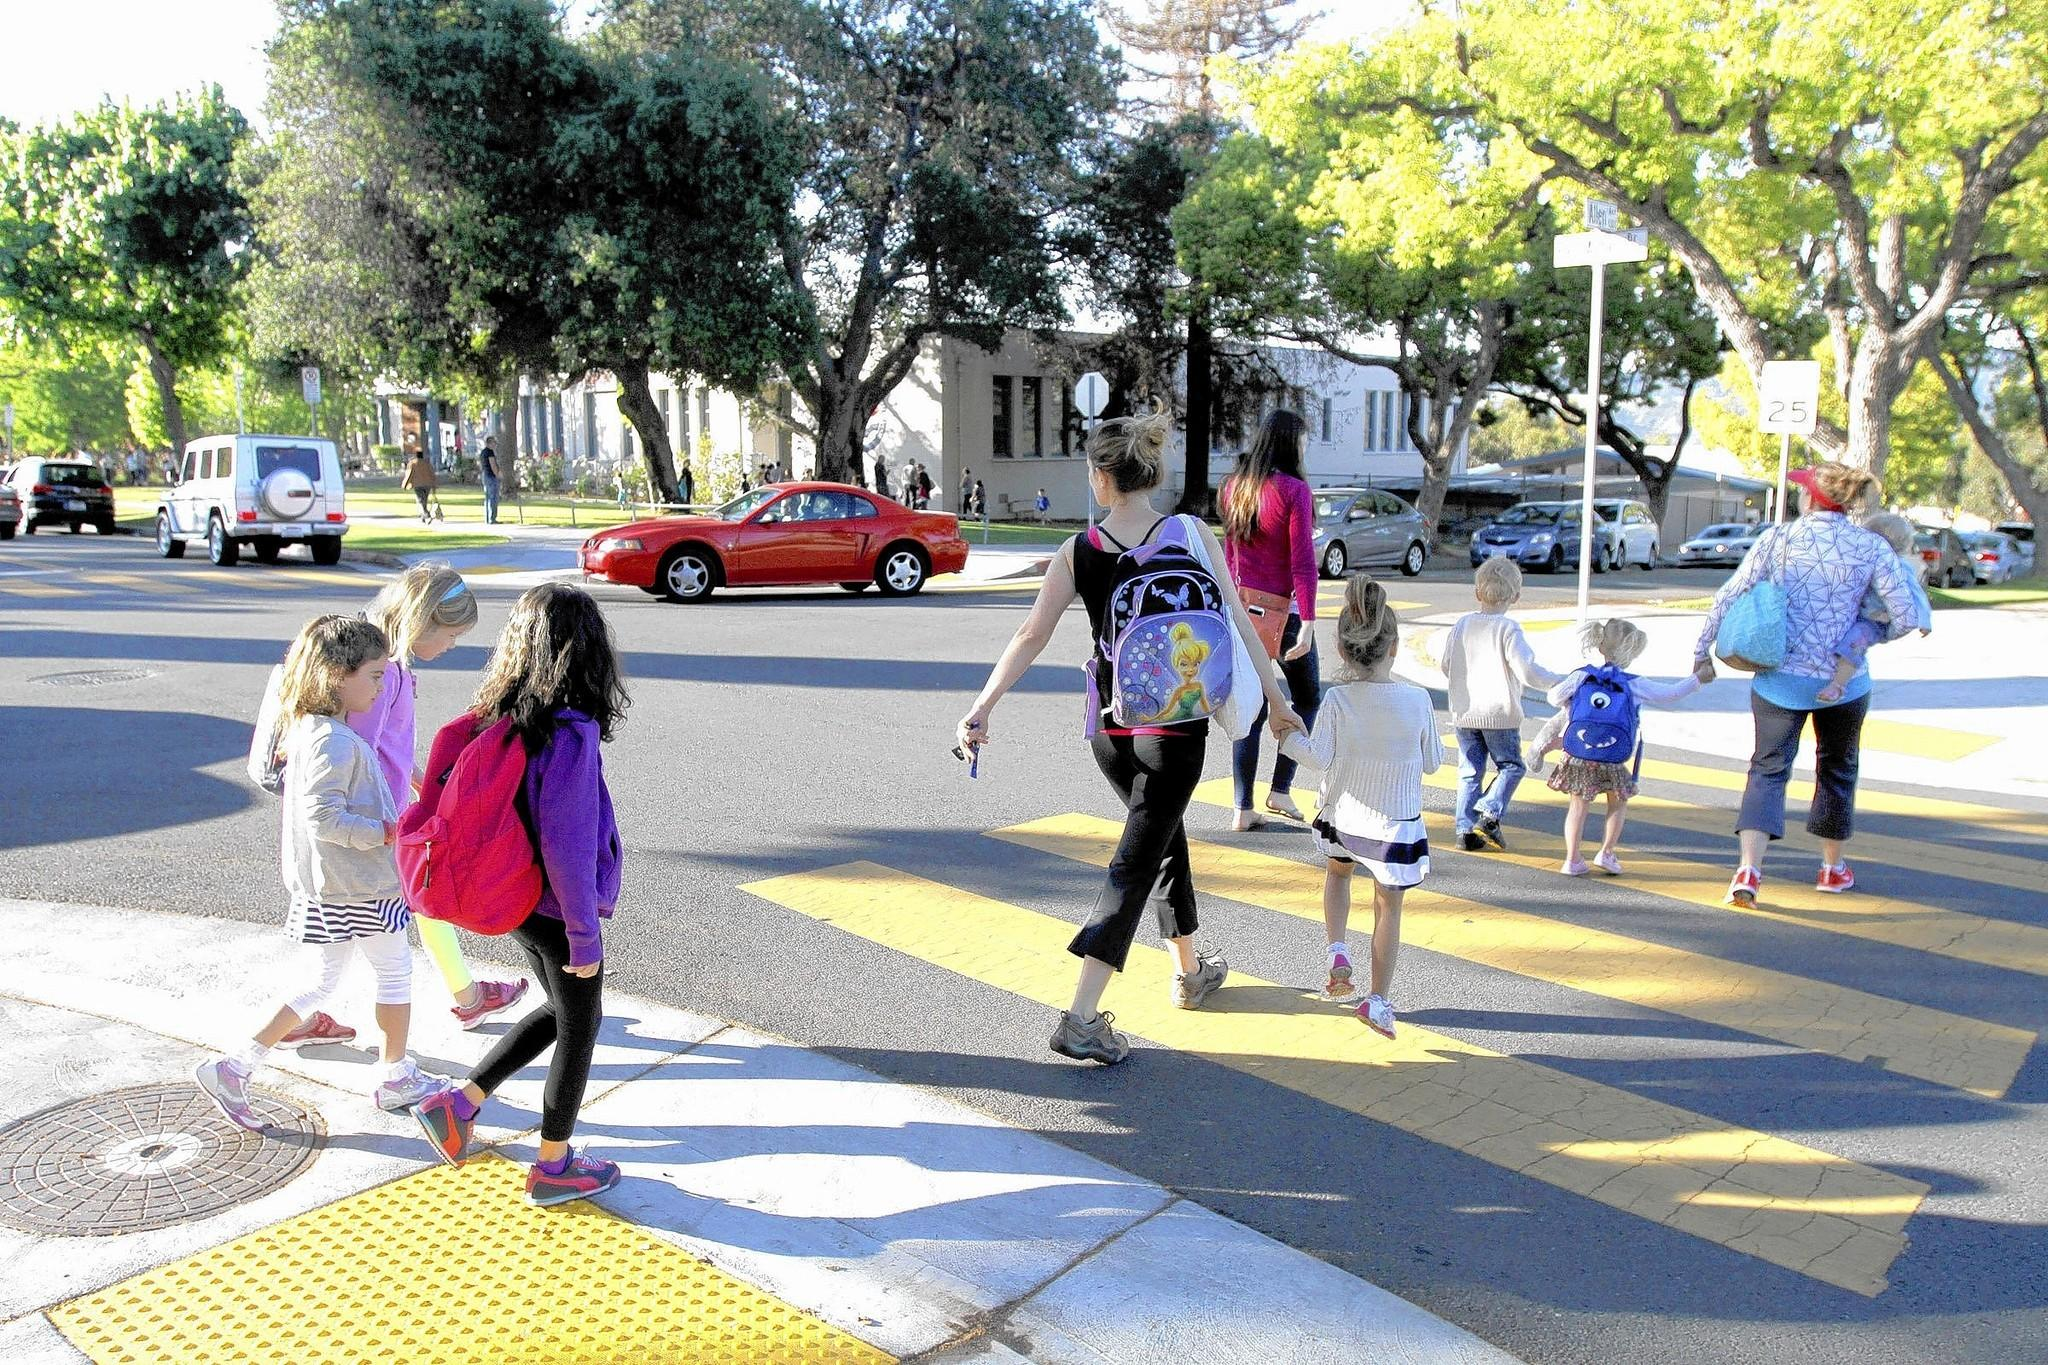 A group of parents and children cross at Allen Avenue and Bel Aire Drive in front of Balboa Elementary School in Glendale on Thursday, April 10, 2014. There are no crossing guards at this location.